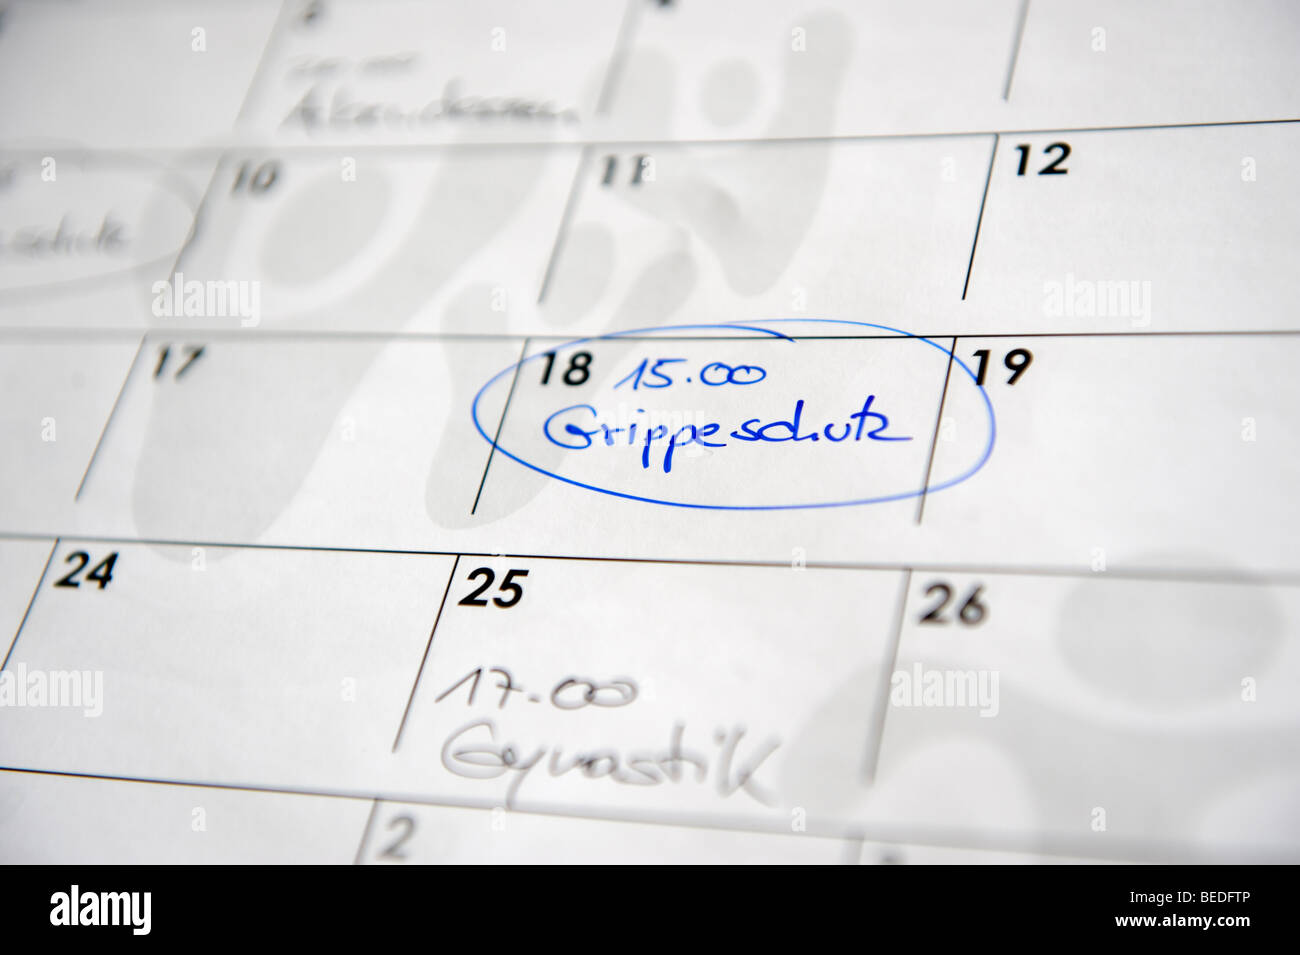 Calendar with an appointment for a flu shot - Stock Image